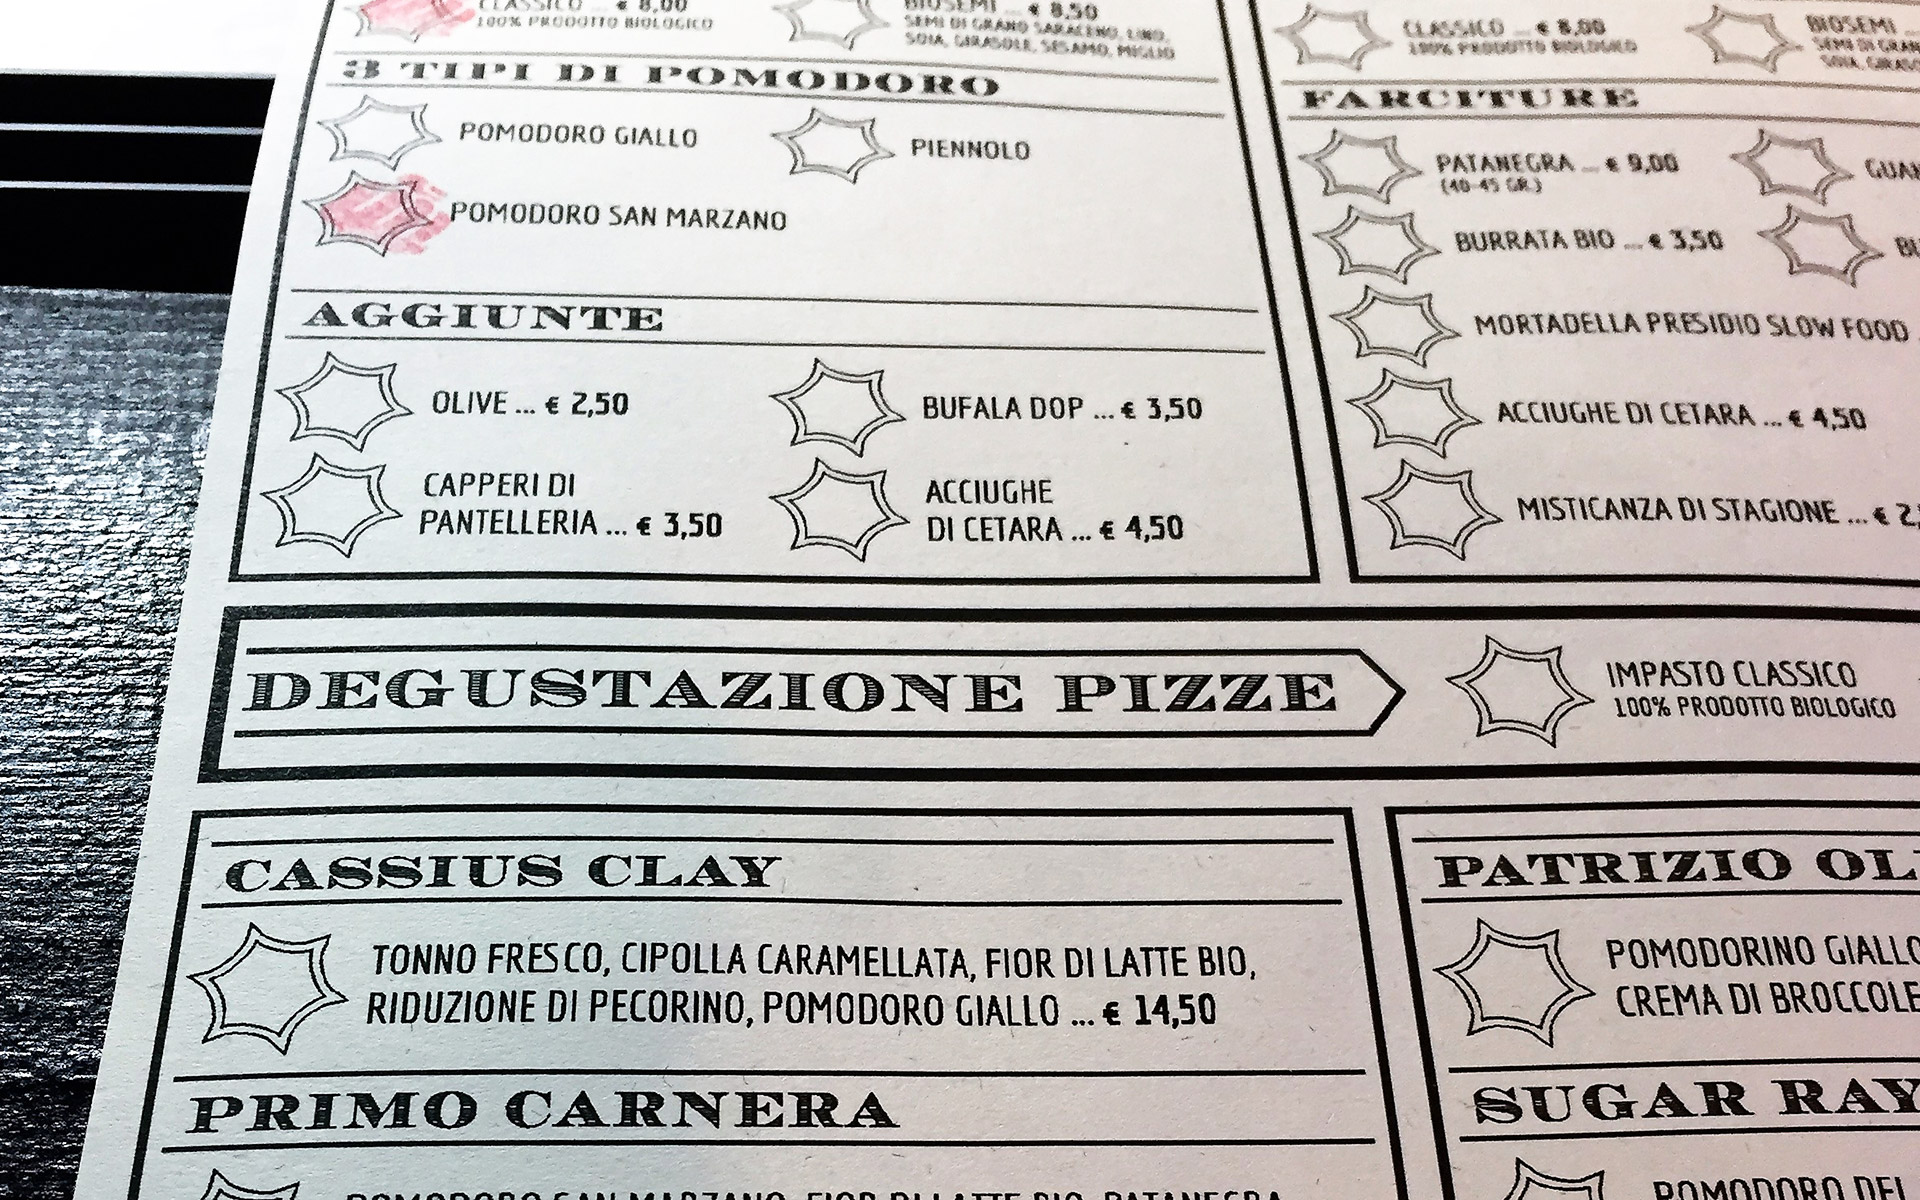 Pizzeria Darsena Milano Dirty Gym Menu Recensione